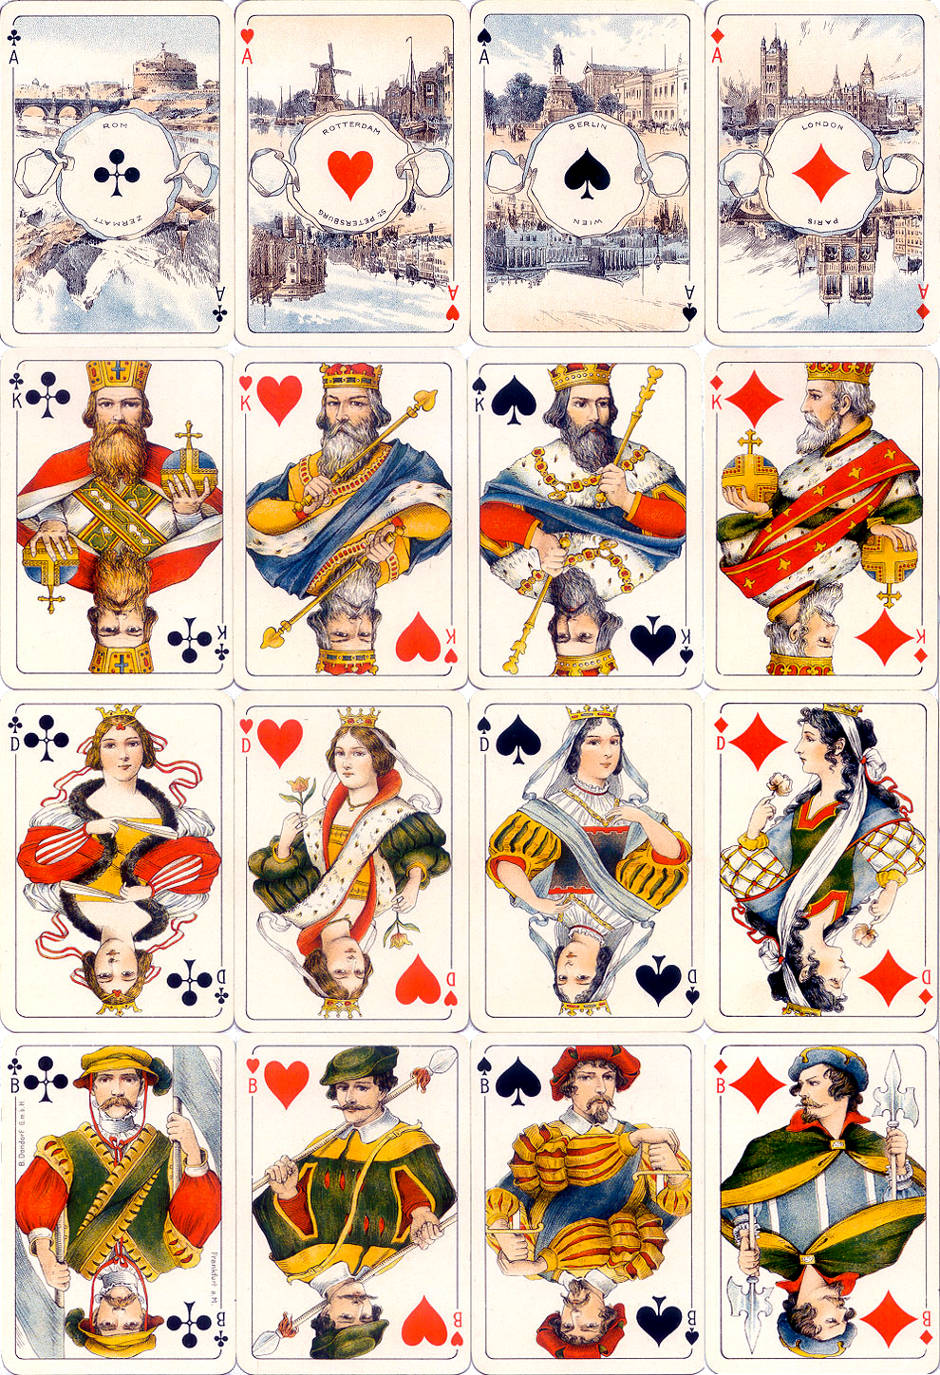 Dondorf's Hauptstadte-Spiel, c.1910, in which the four Aces depict scenes from European capital cities